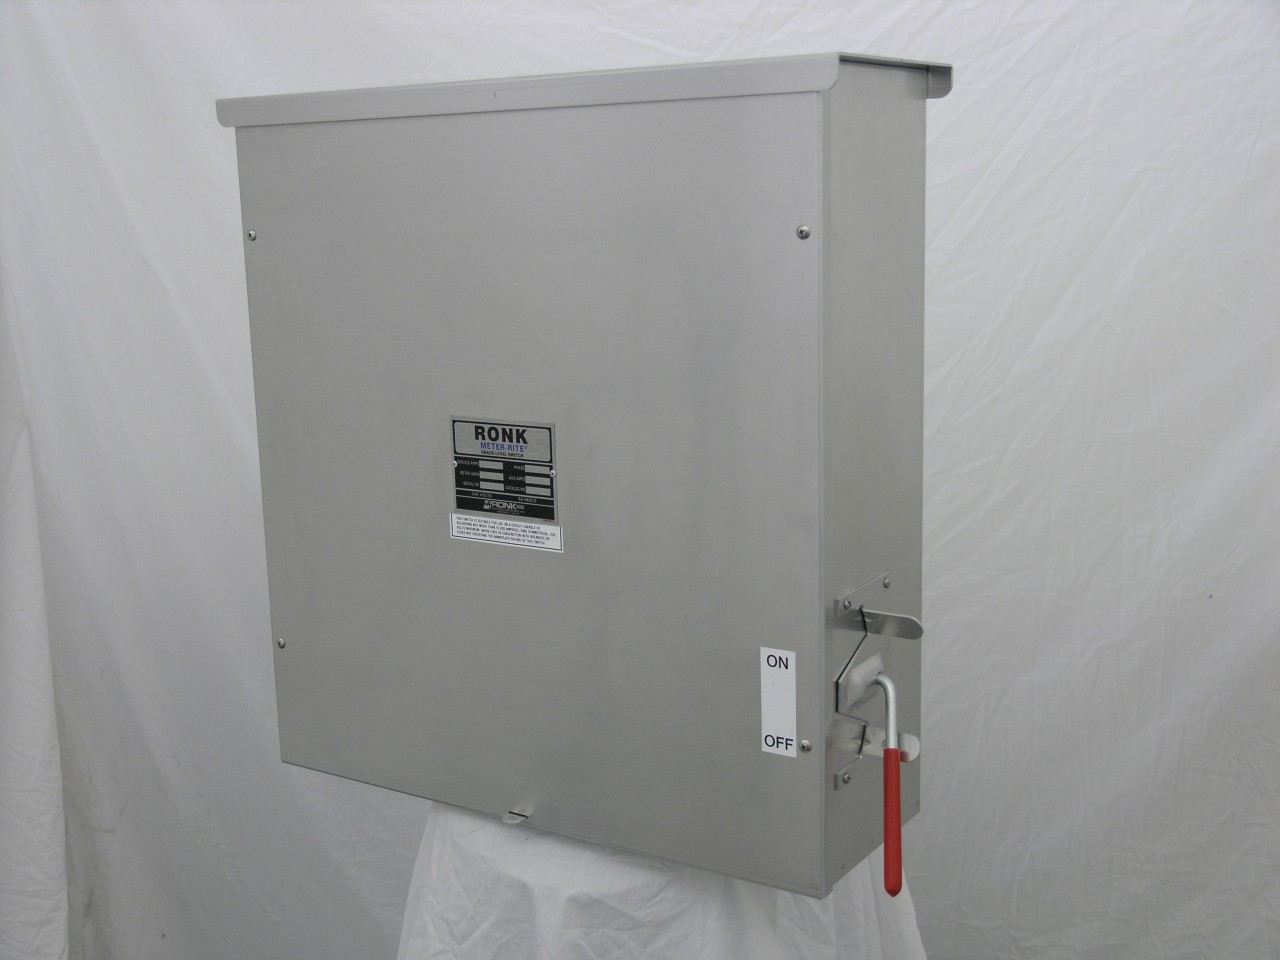 Ronk D7805 Disconnect Switch (3Ph, 200A)